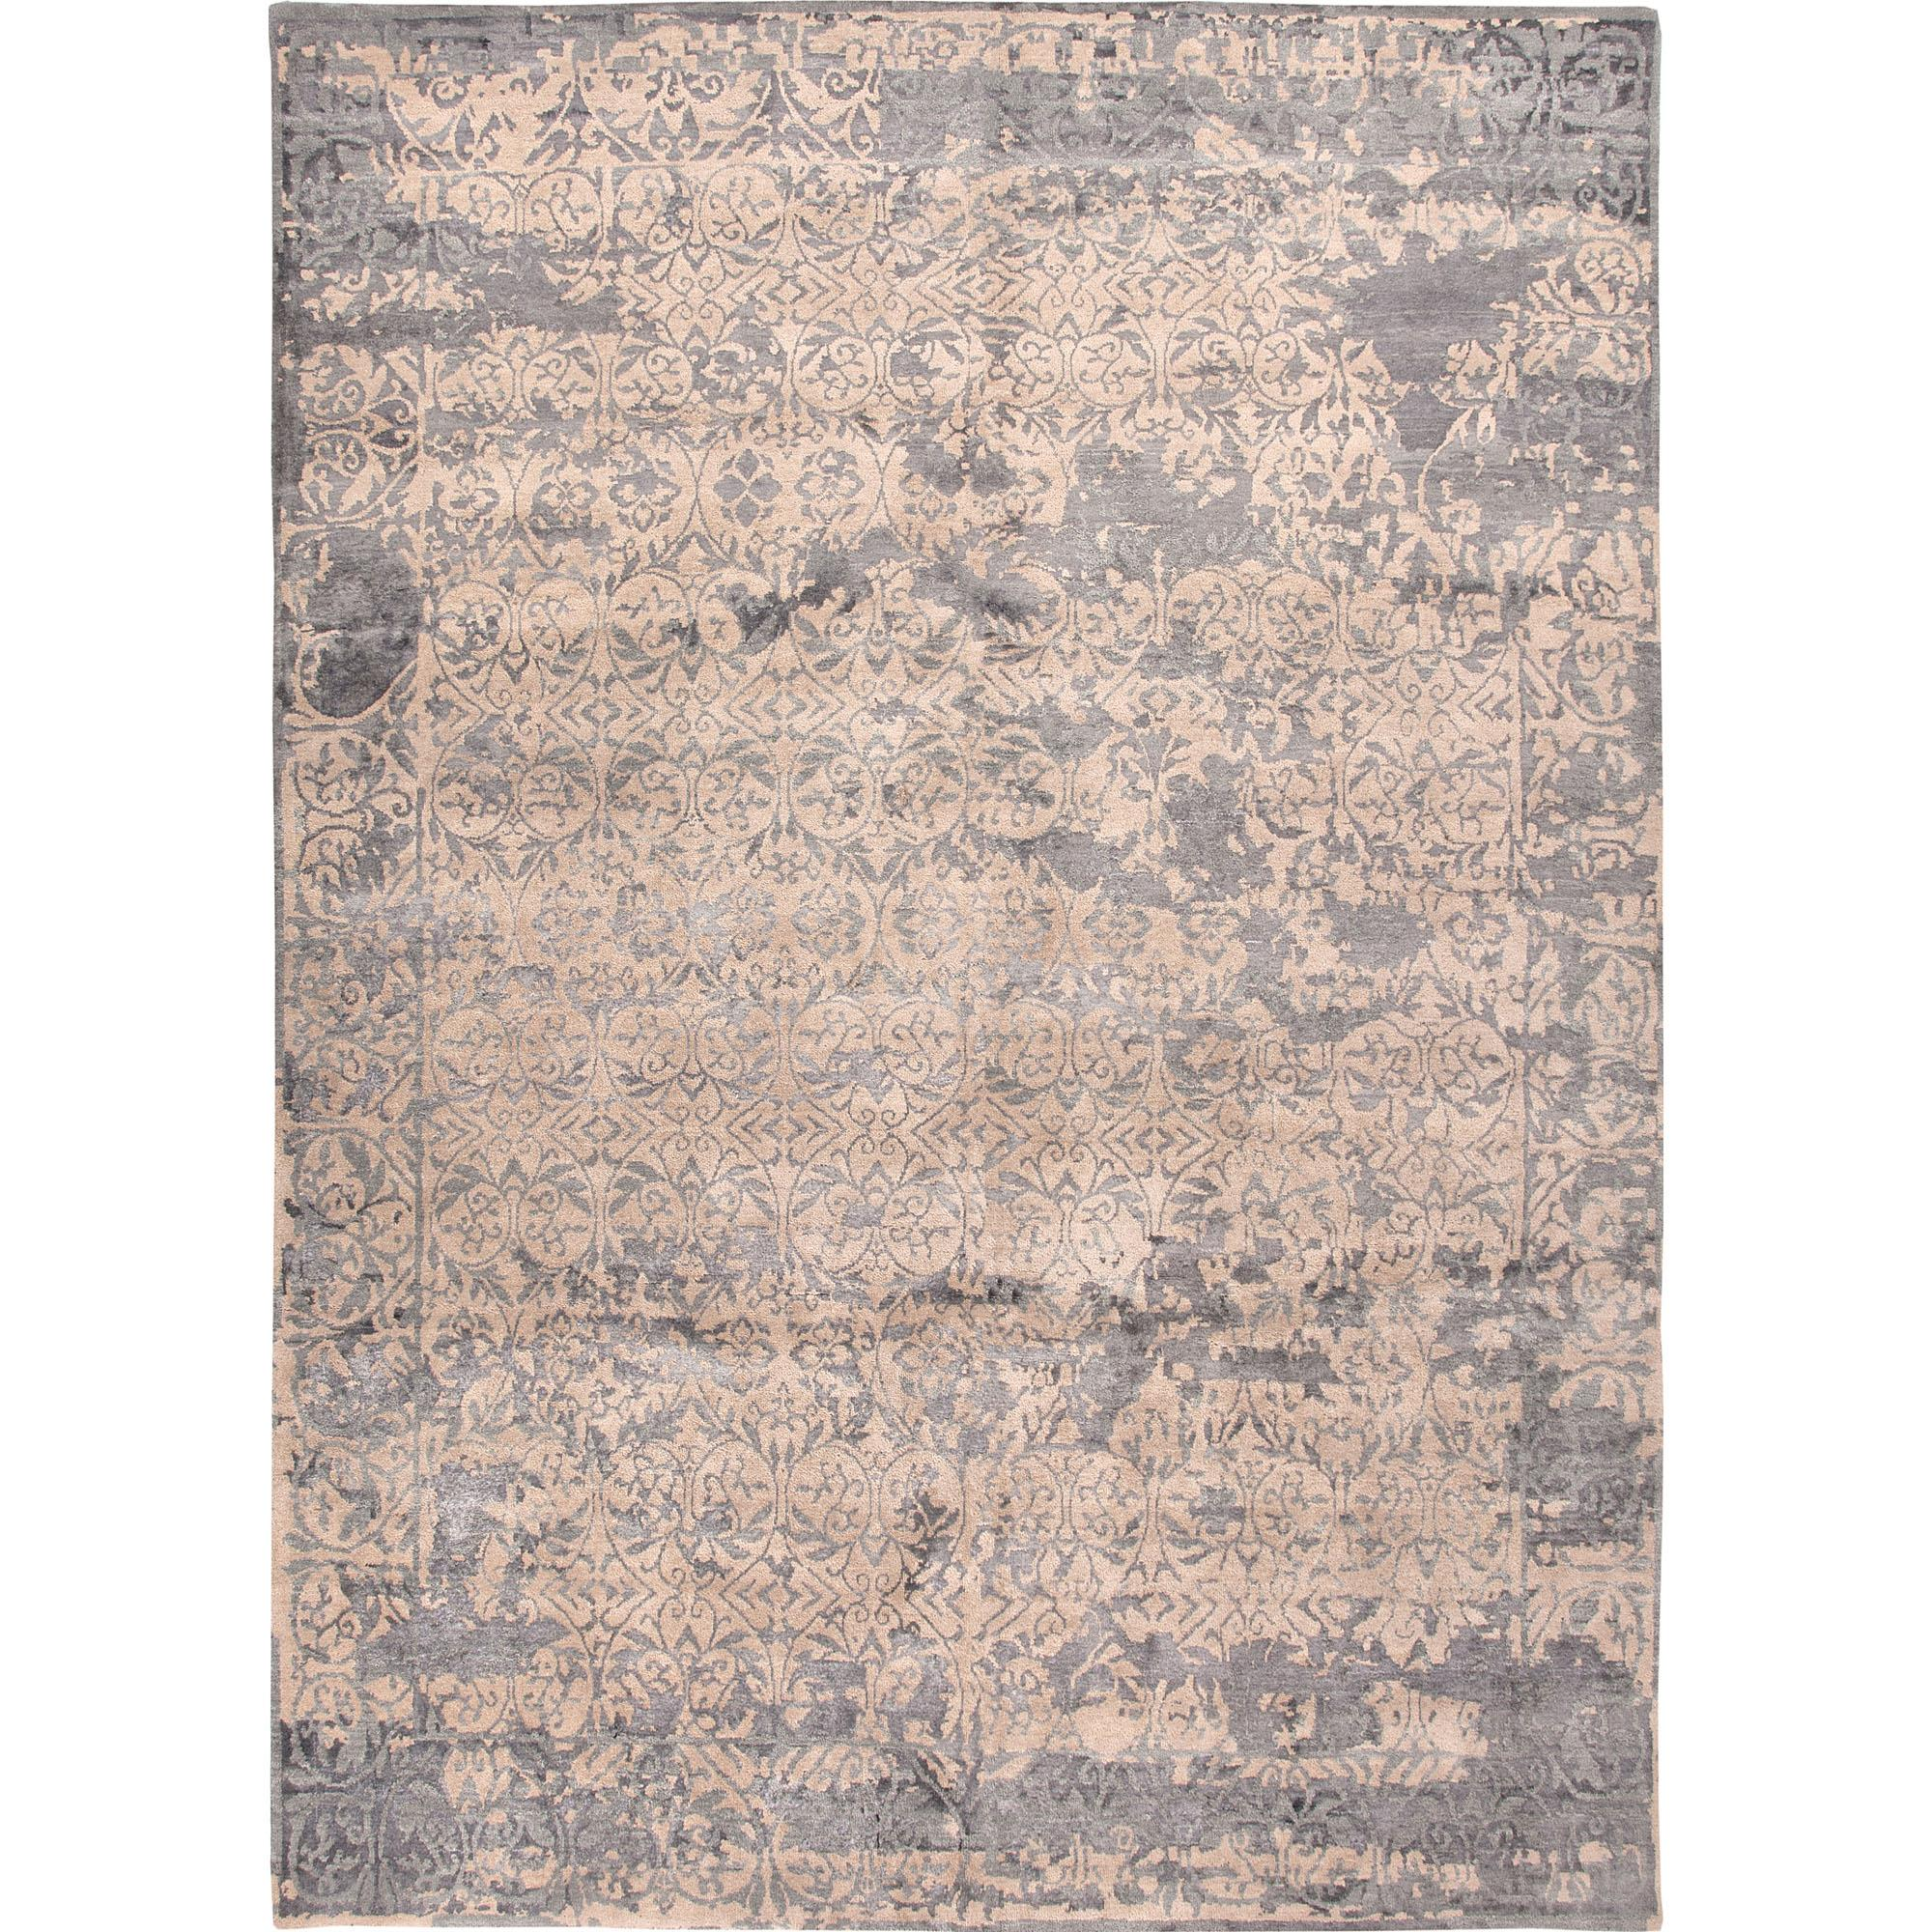 JAIPUR Rugs Connextion By Jenny Jones-global 5 x 8 Rug - Item Number: RUG101004